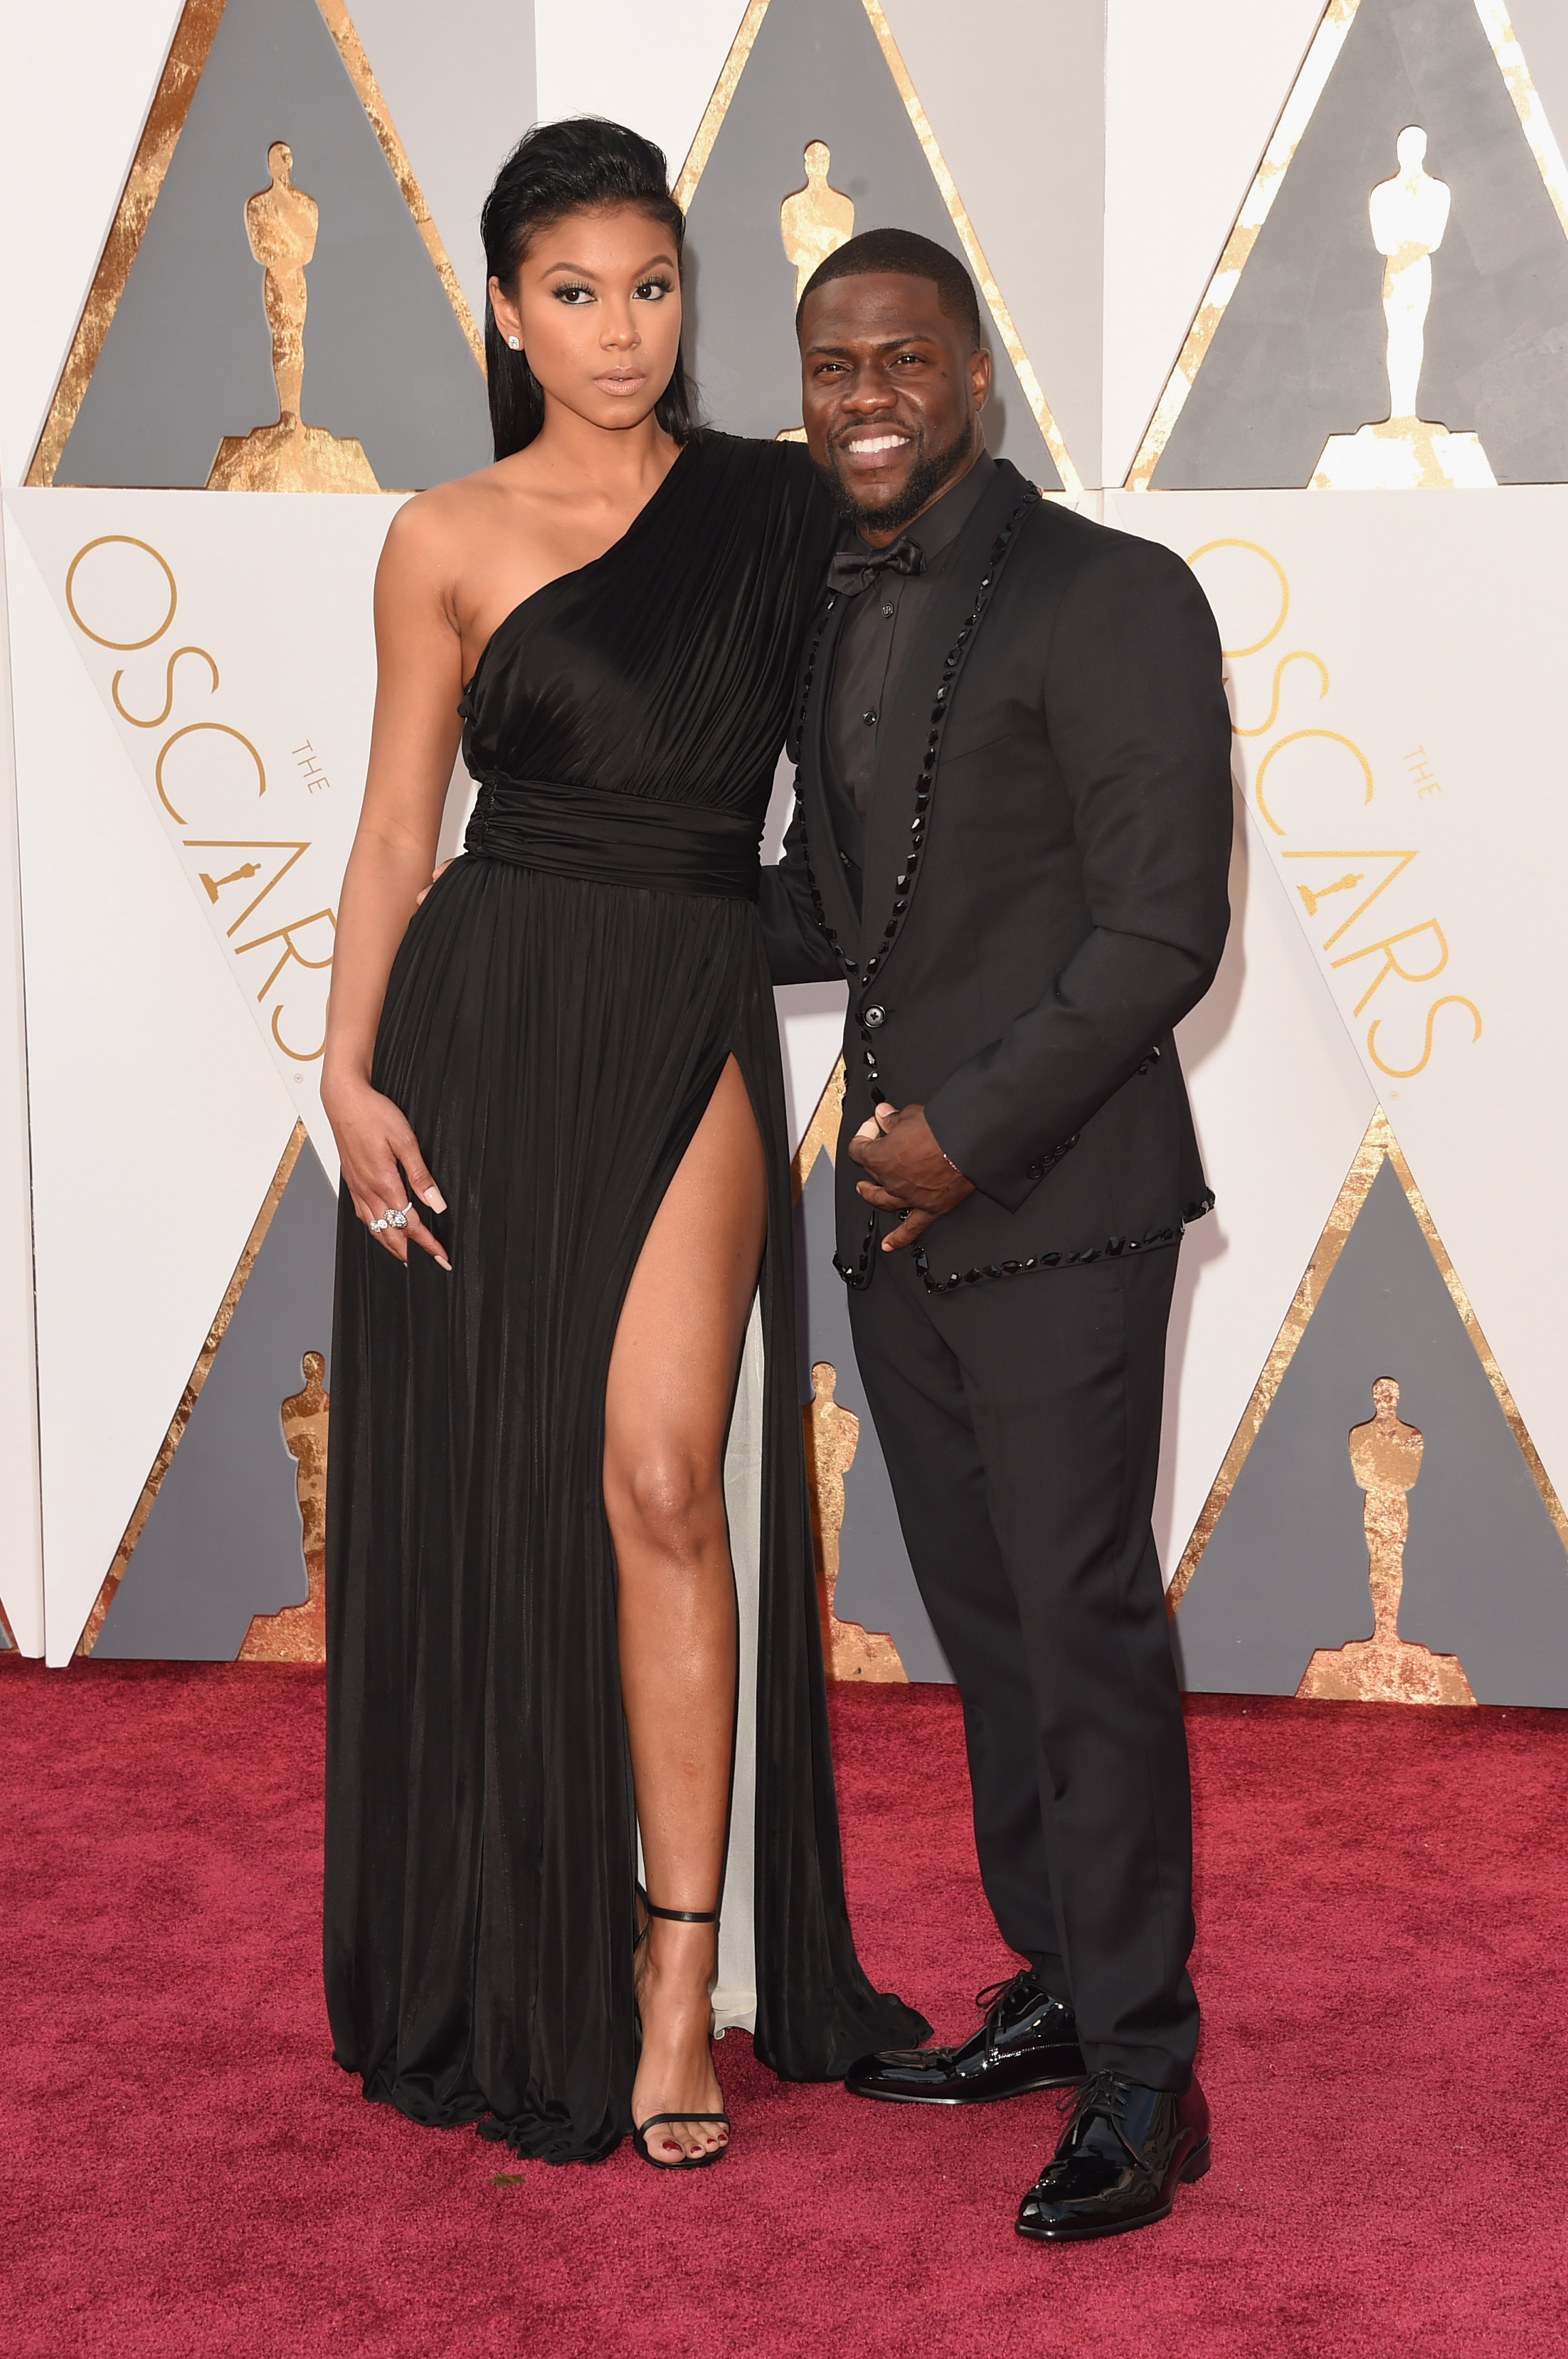 Eniko Parrish and Kevin Hart attend the 88th Annual Academy Awards on Feb. 28, 2016 in Hollywood, Calif.